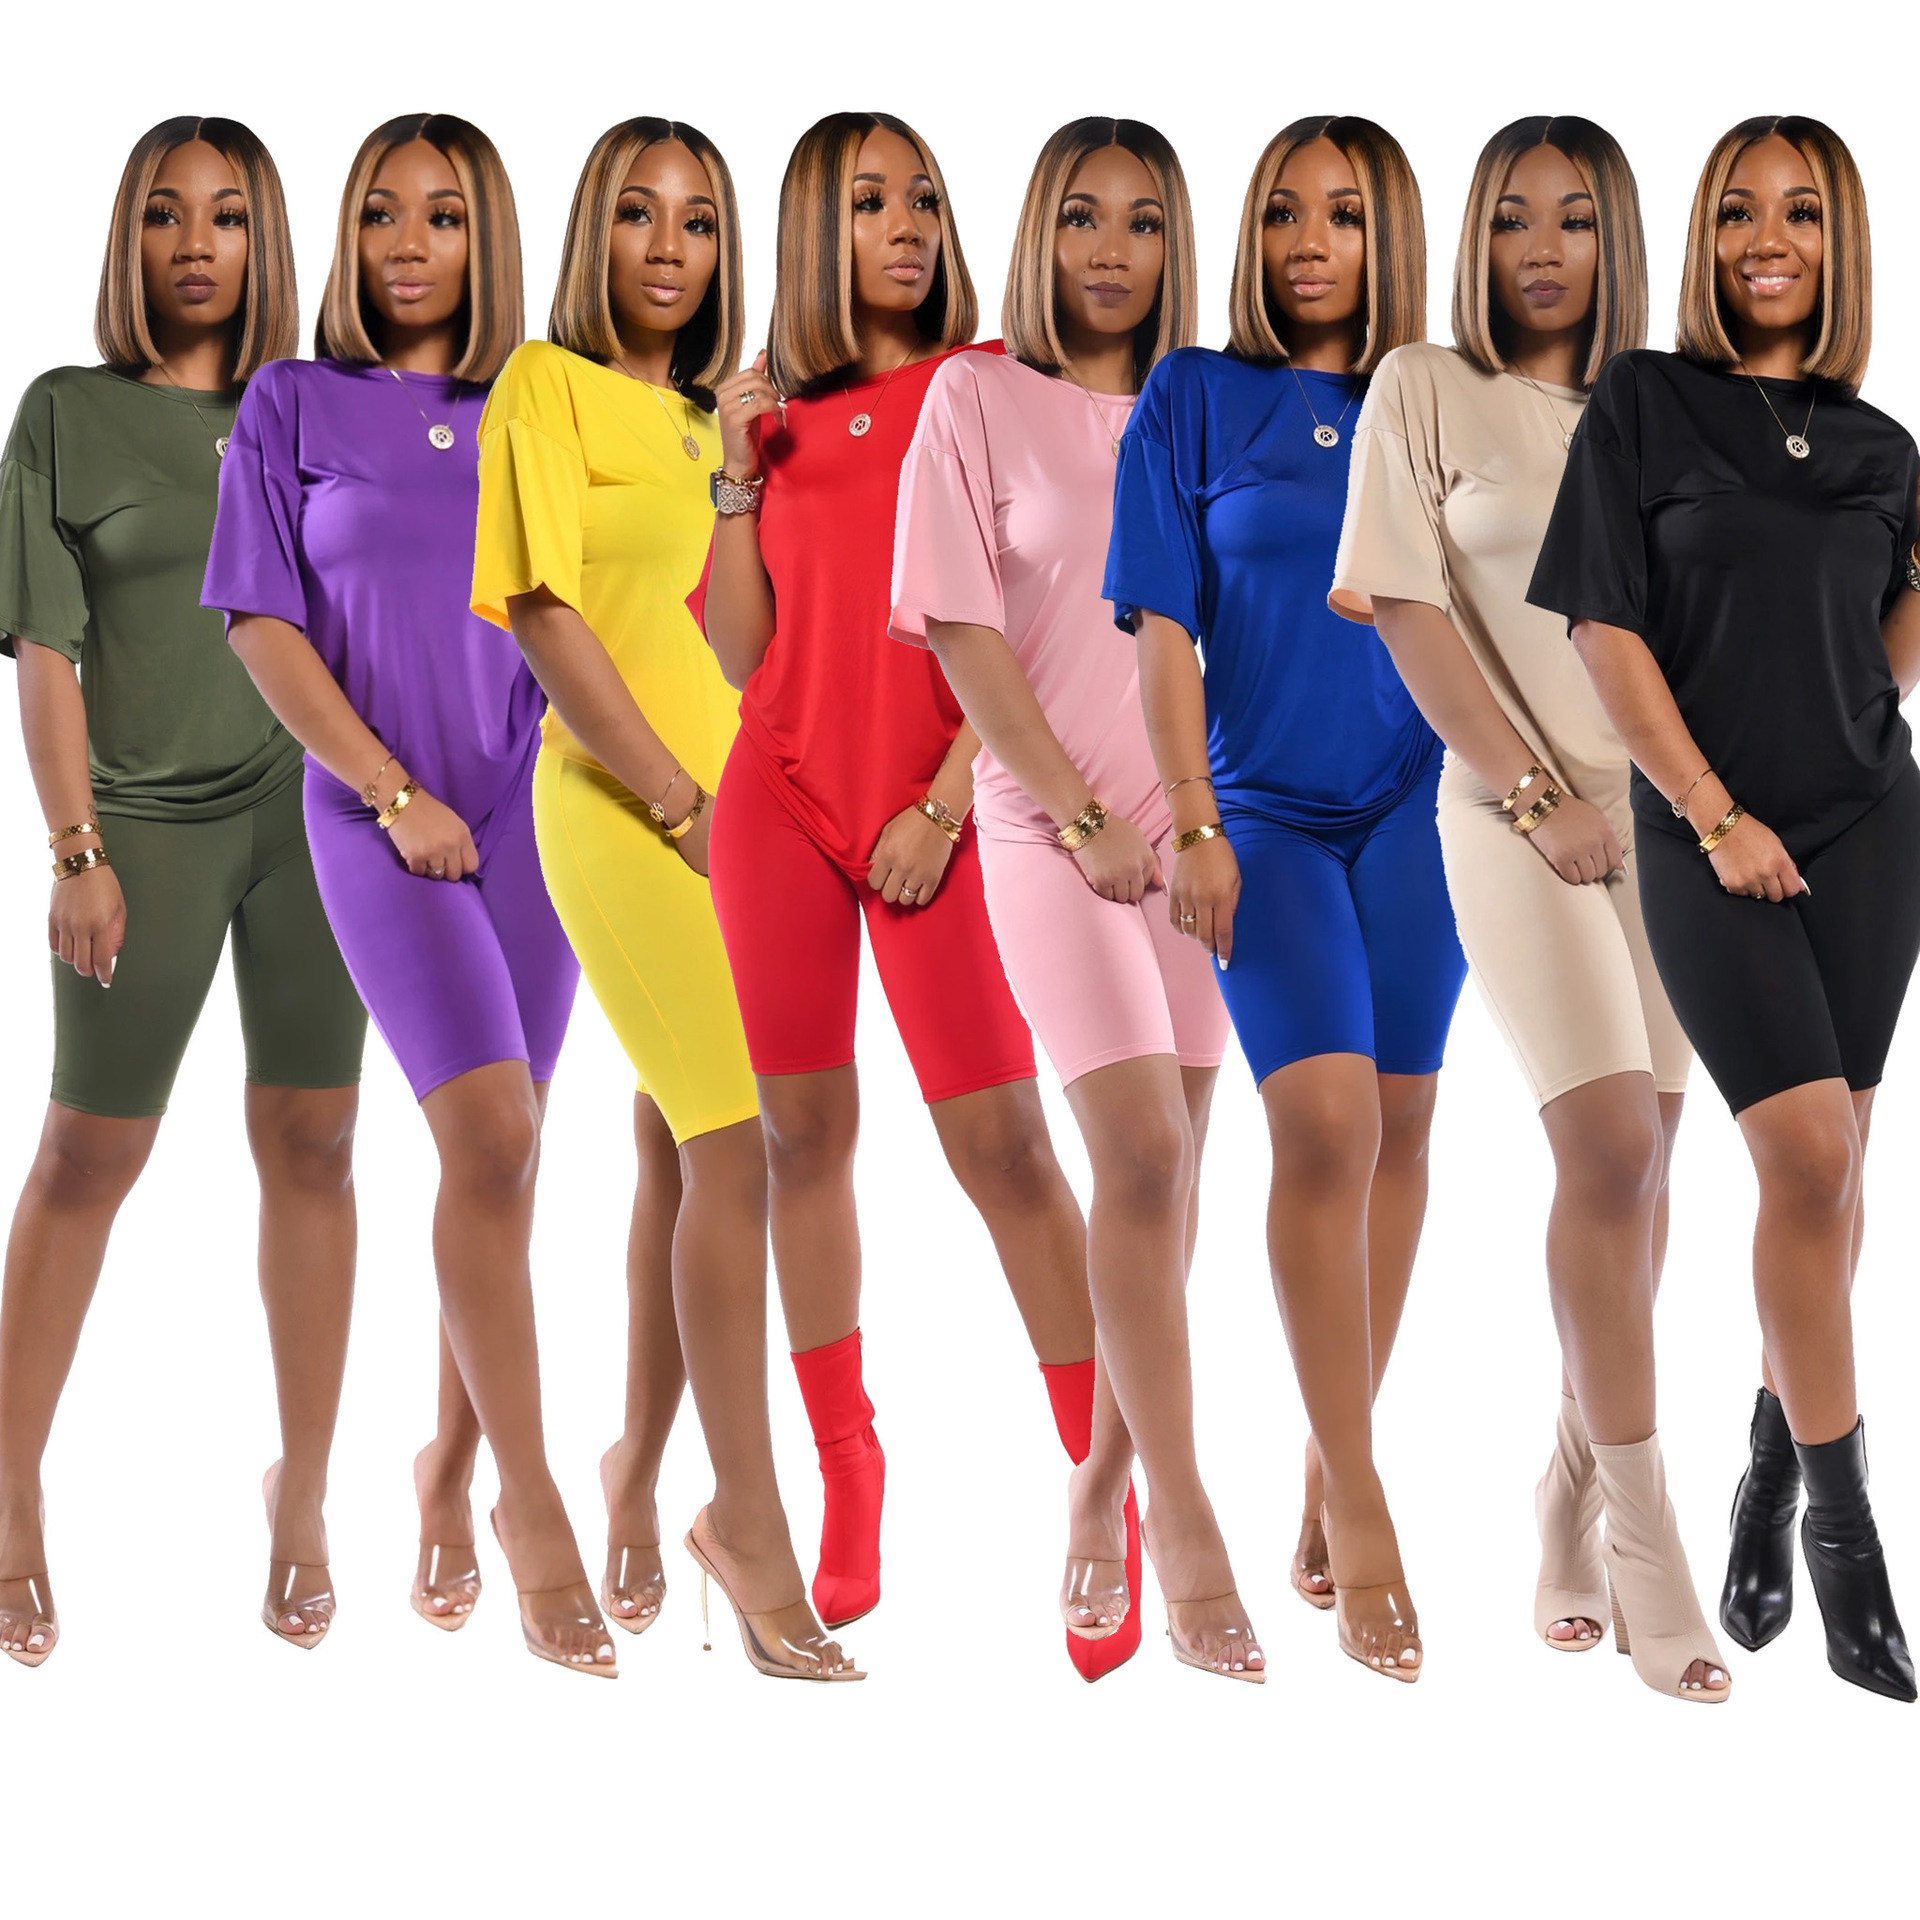 2020 Summer New Two 2  Piece Suit Set Women's Short-sleeve T-shirt Top+ Biker Shorts Casual Avtive Sport Outfits Night Club Sets